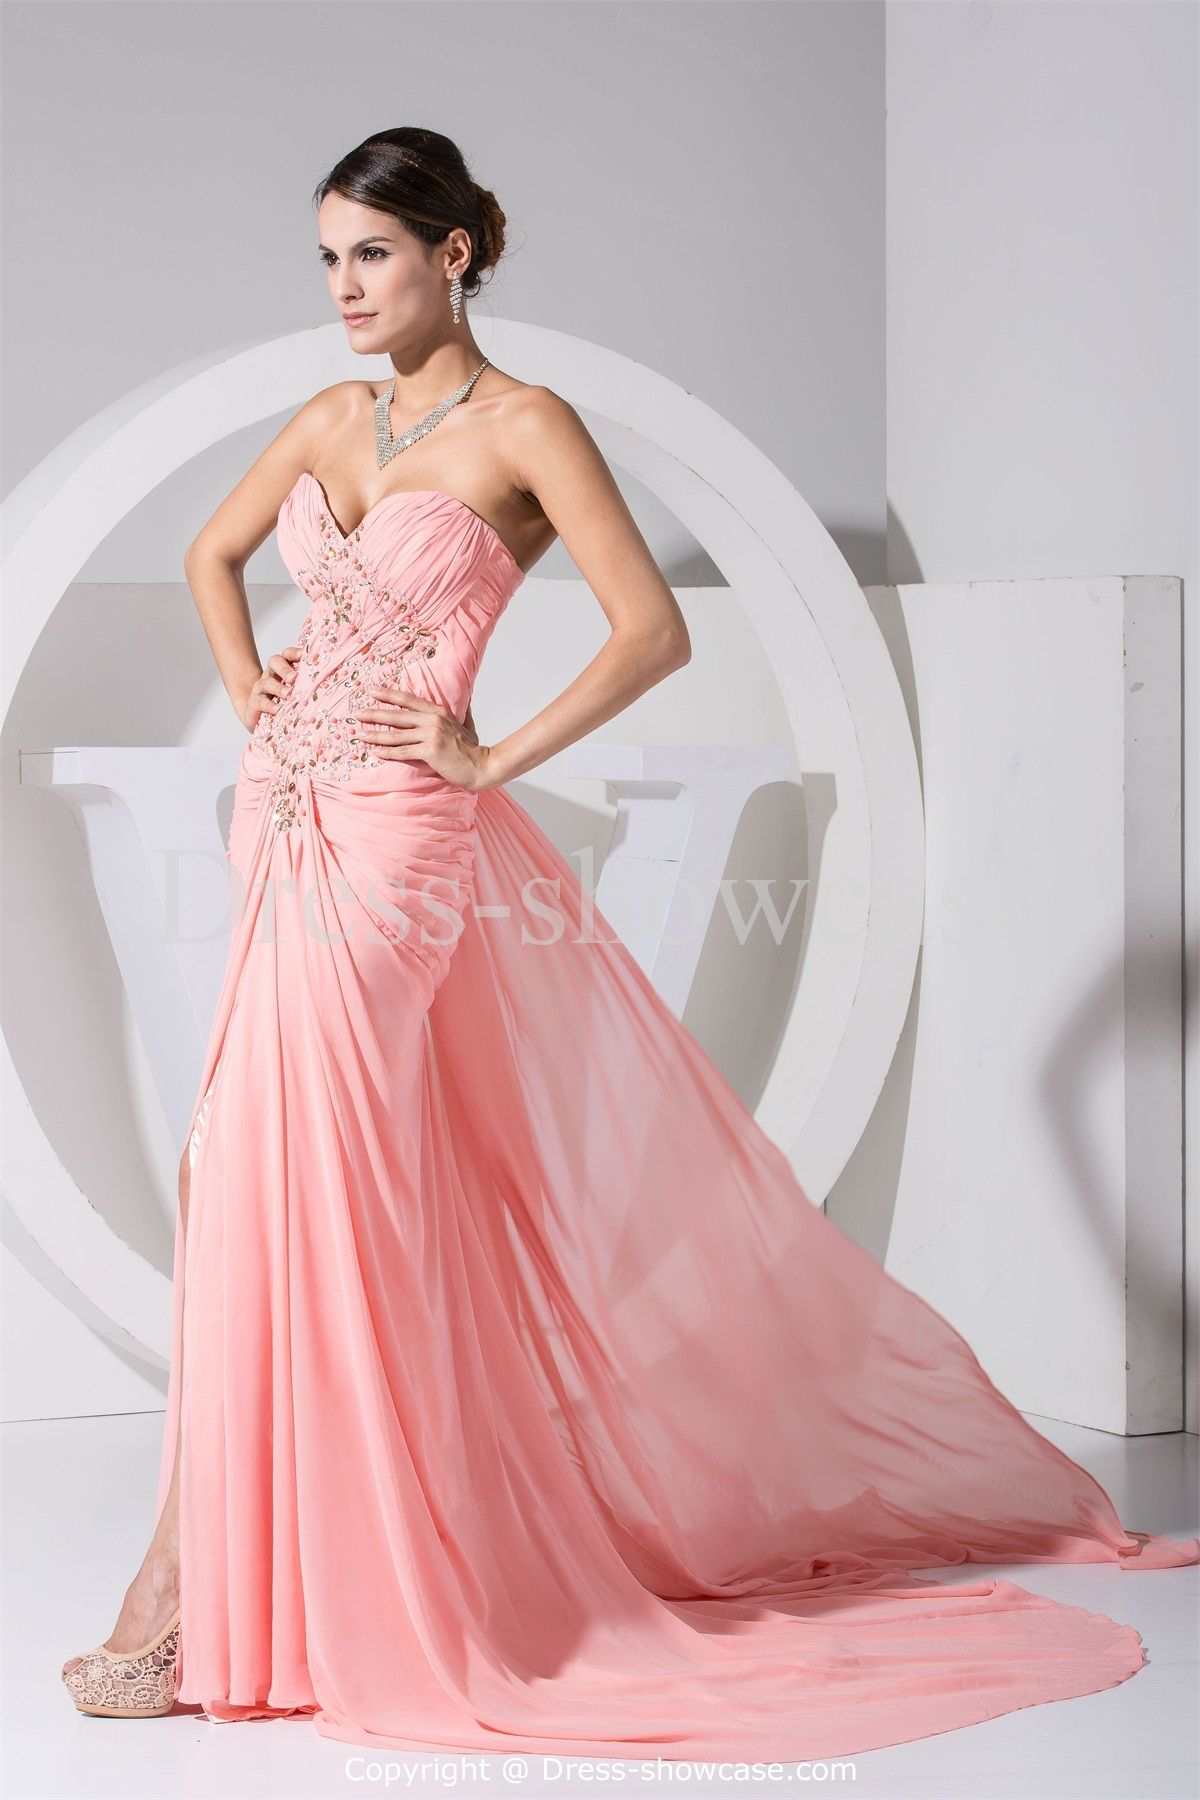 Beading Sweetheart Pageant Dress   Pageant!   Pinterest   Pageants ...